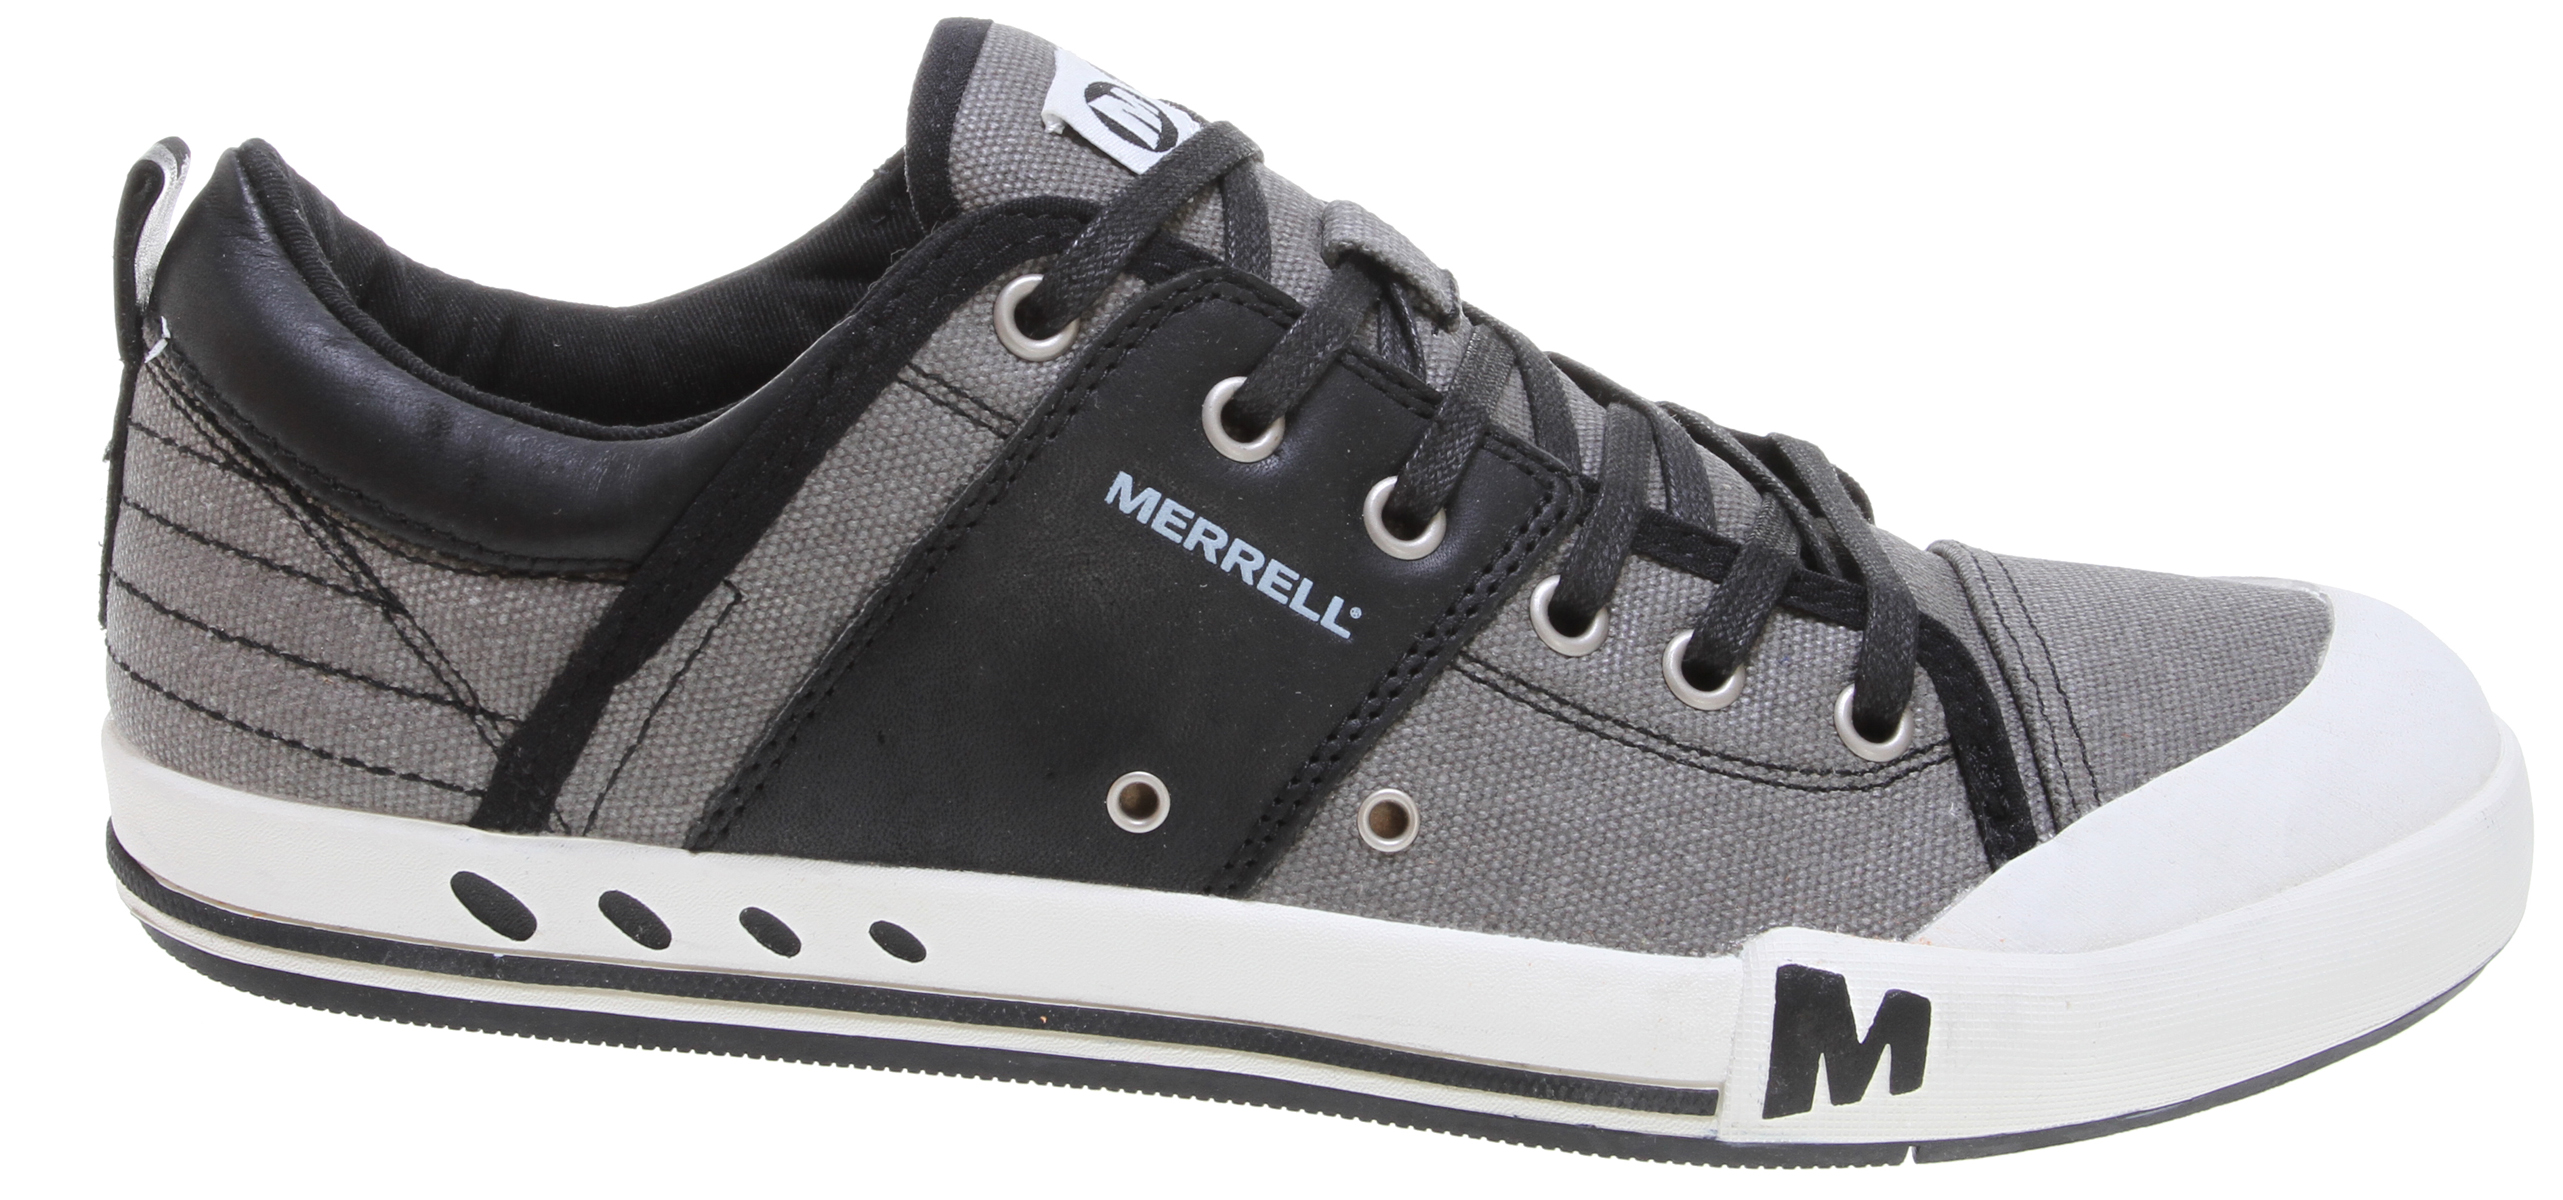 Secure your all-star status with this street smart sneaker to slam dunk comfort and style. Its upper combines full-grain leather with canvas. And, for hitting the streets, there's added shock - and odor - absorption for all-day comfort.Key Features of the Merrell Rant Shoes: Strobel construction offers flexibility and comfort Canvas and full grain leather upper Low cut upper Twill lining treated with Aegis® antimicrobial solution resists odor EVA removable footbed Molded nylon arch shank Merrell air cushion in the heel absorbs shock and adds stability with an EVA midsole for cushioning Merrell Rant Sole / Sticky Rubber Men's Weight: 1 lb 12 ozs - $48.95